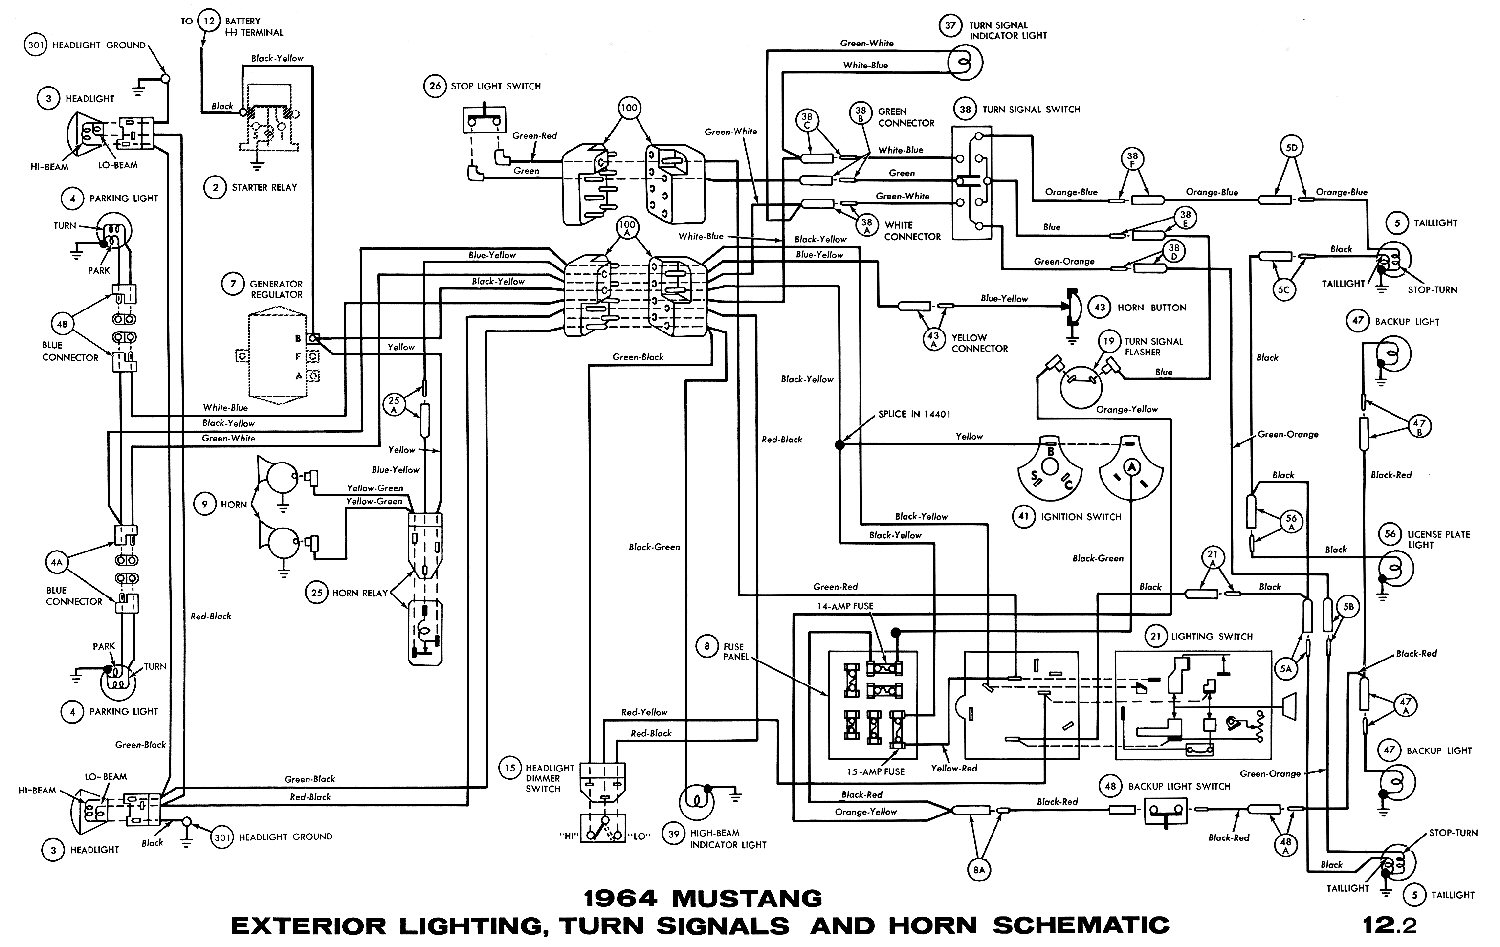 1964i 1965 ford mustang wiring diagram 1999 mustang gt wiring diagram 1965 ford mustang wiring diagrams at mifinder.co